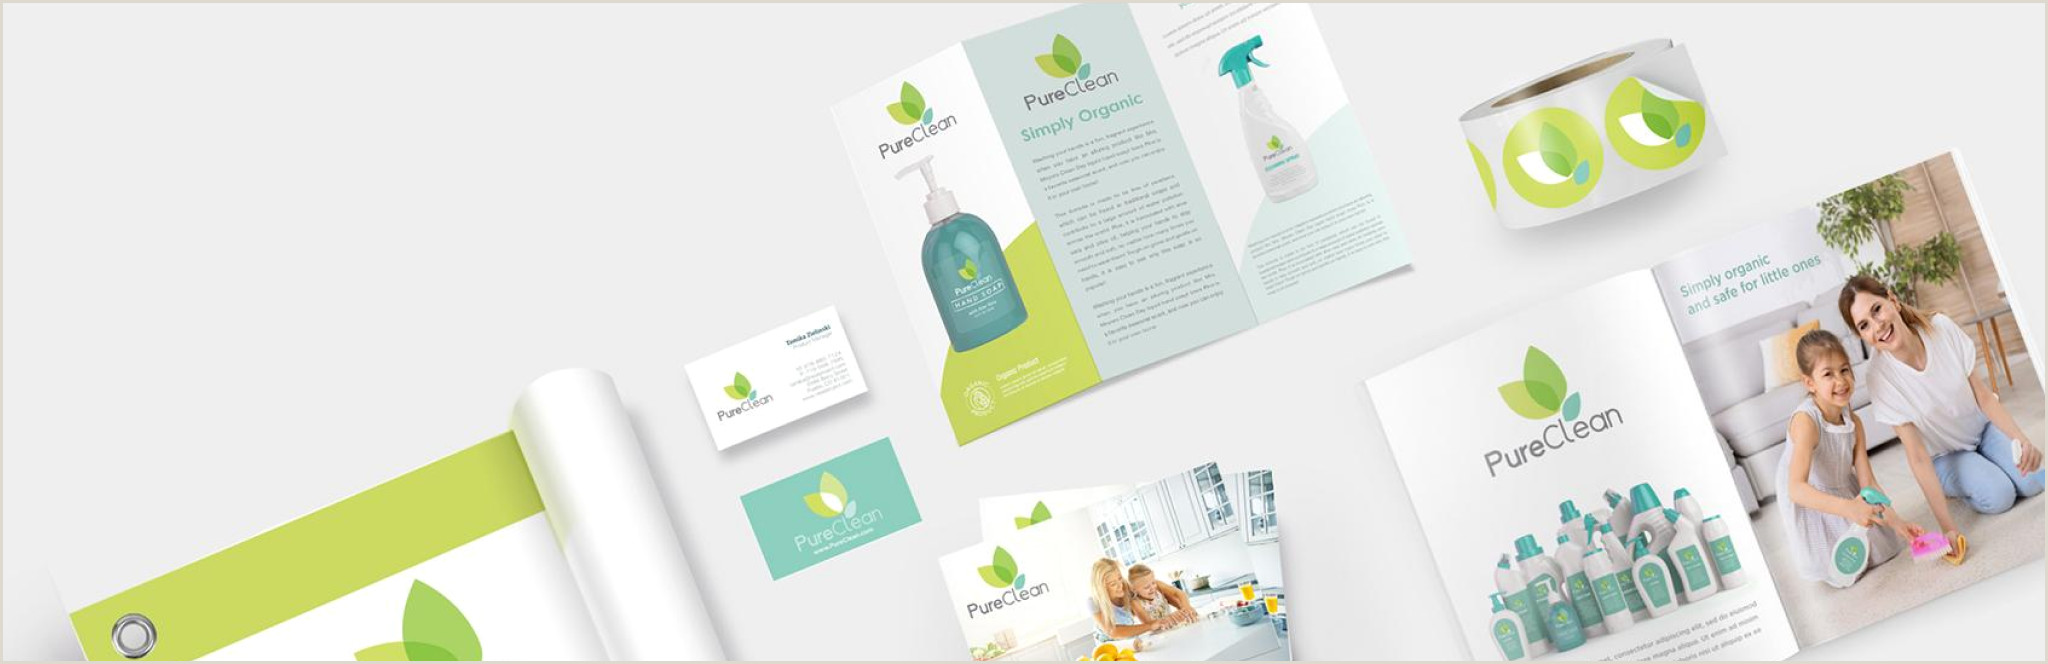 Best Business Cards Printing Online Printplace High Quality Line Printing Services